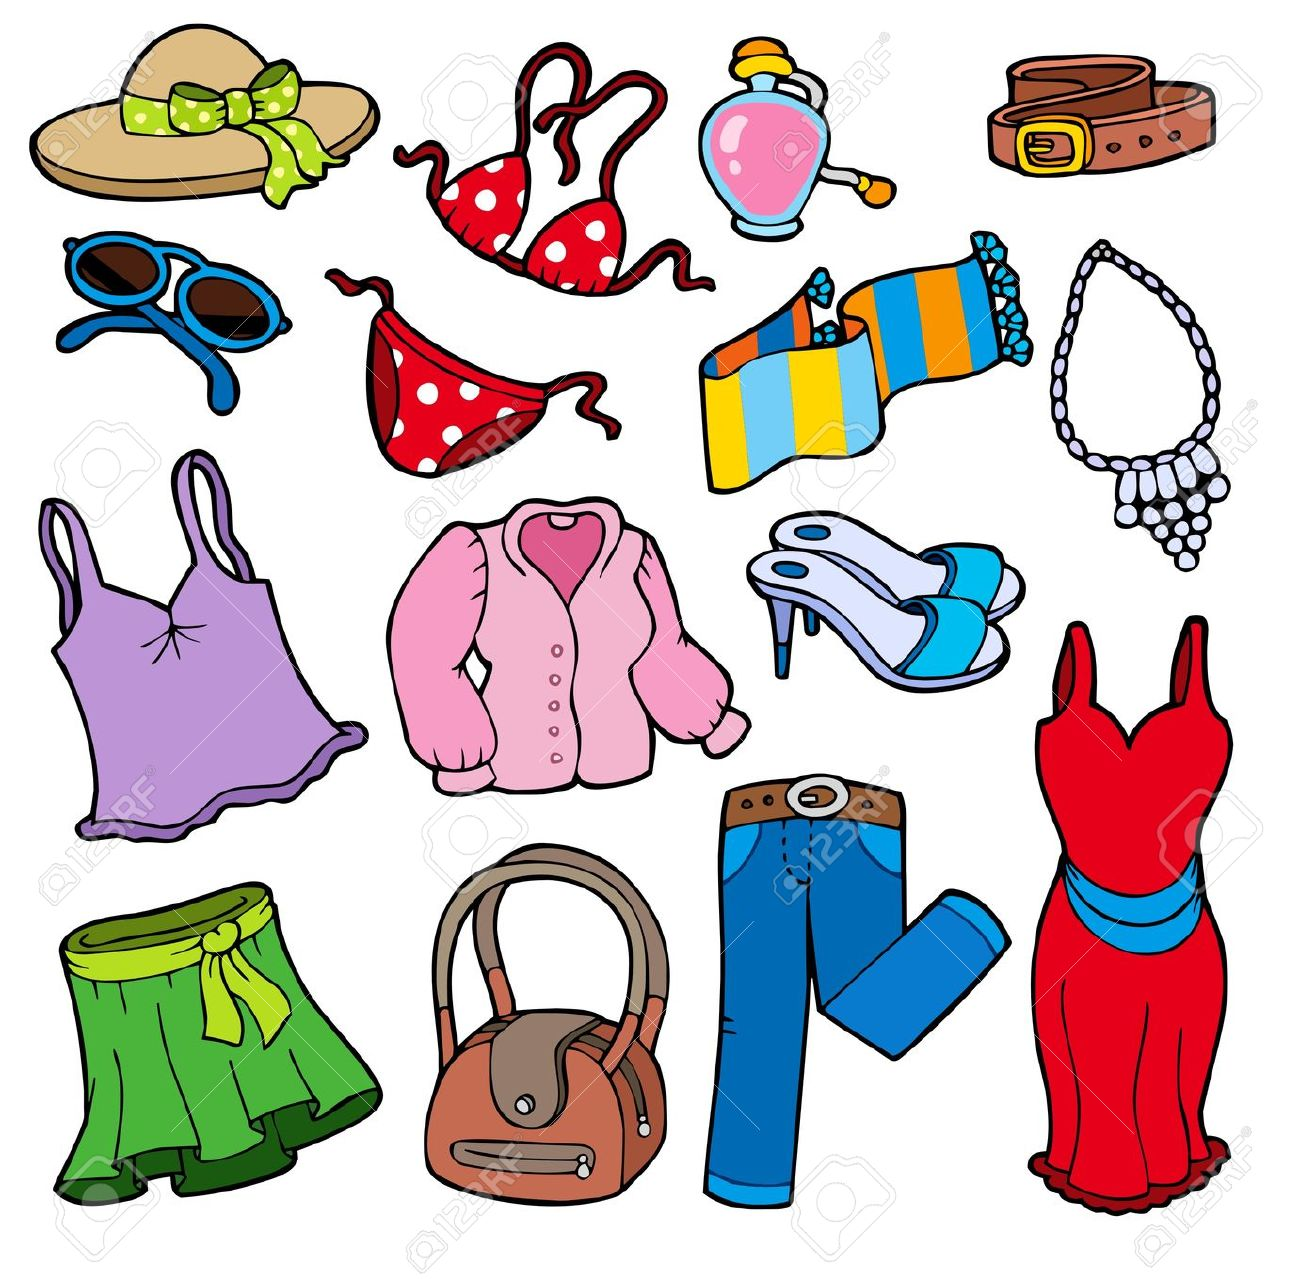 Free Summer Cloth Cliparts, Download Free Clip Art, Free Clip Art on.